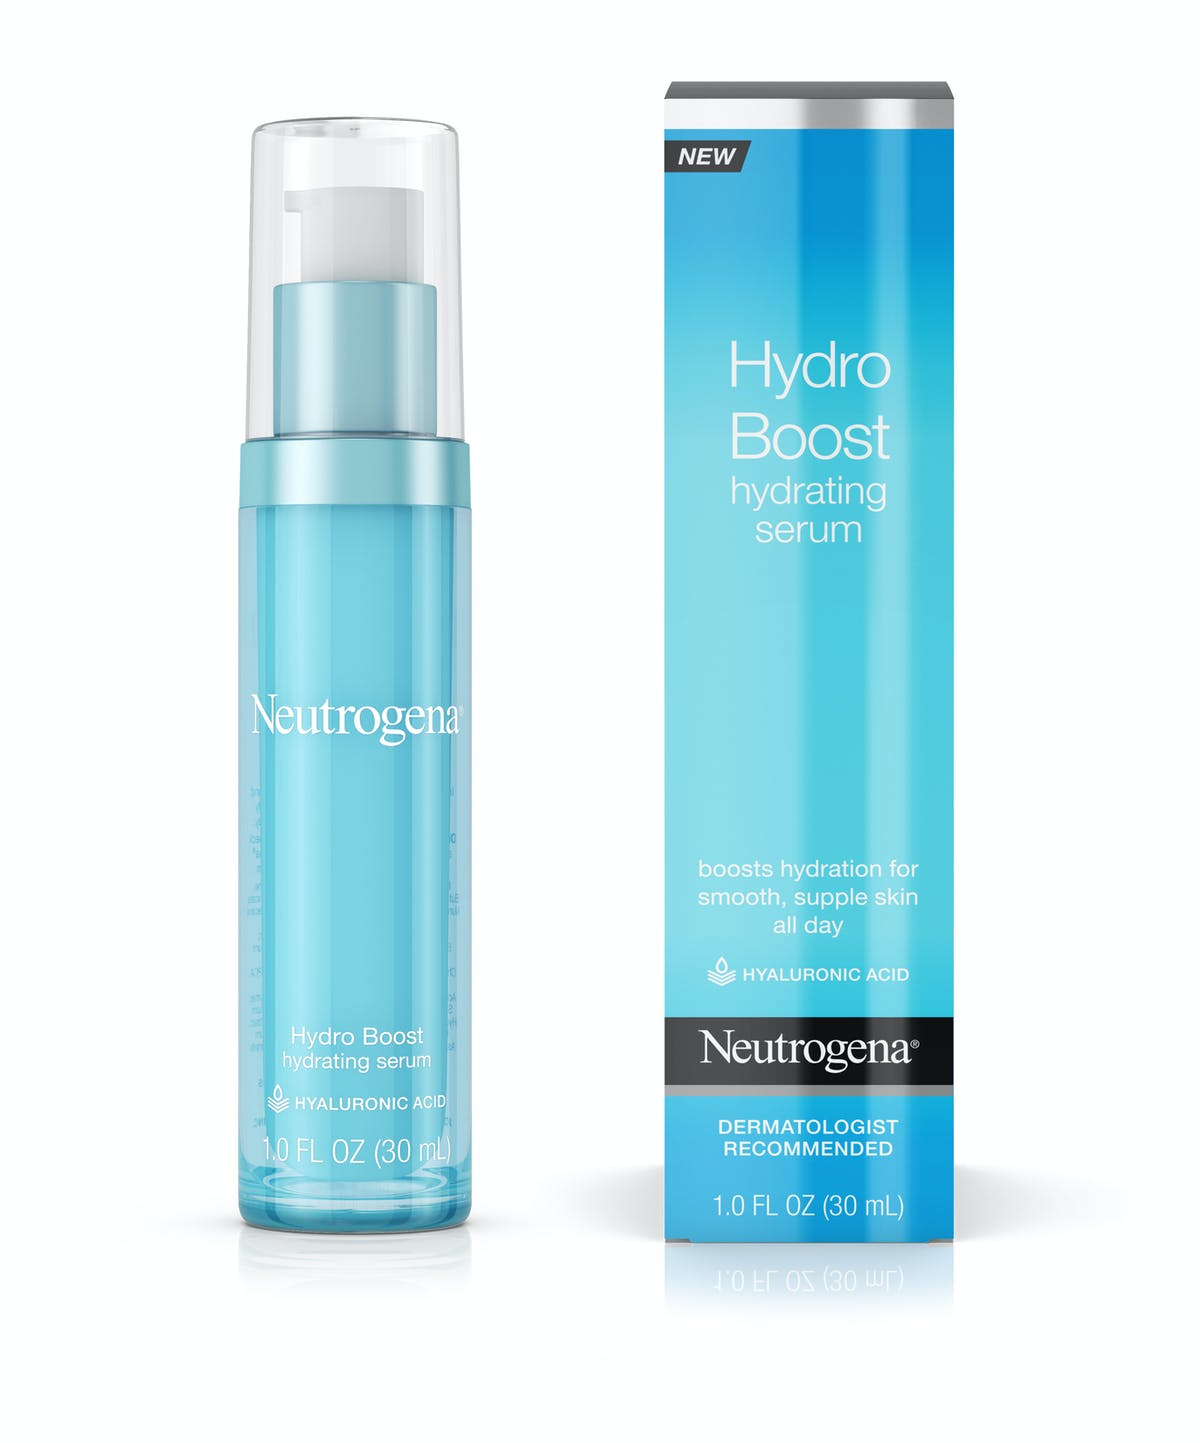 Neutrogena Hydro Boost Hydrating Serum with Hyaluronic Acid